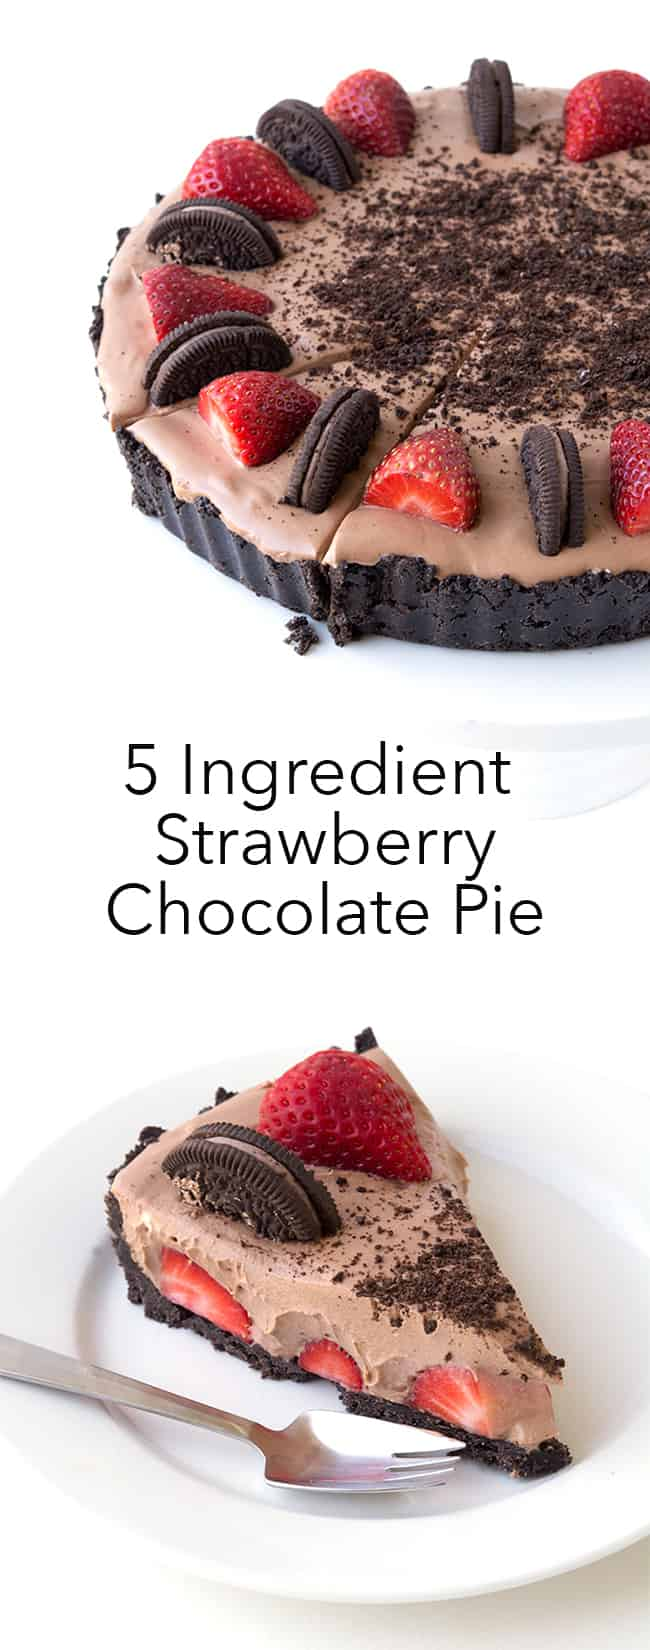 5 Ingredient No Bake Strawberry Chocolate Pie | Sweetest Menu